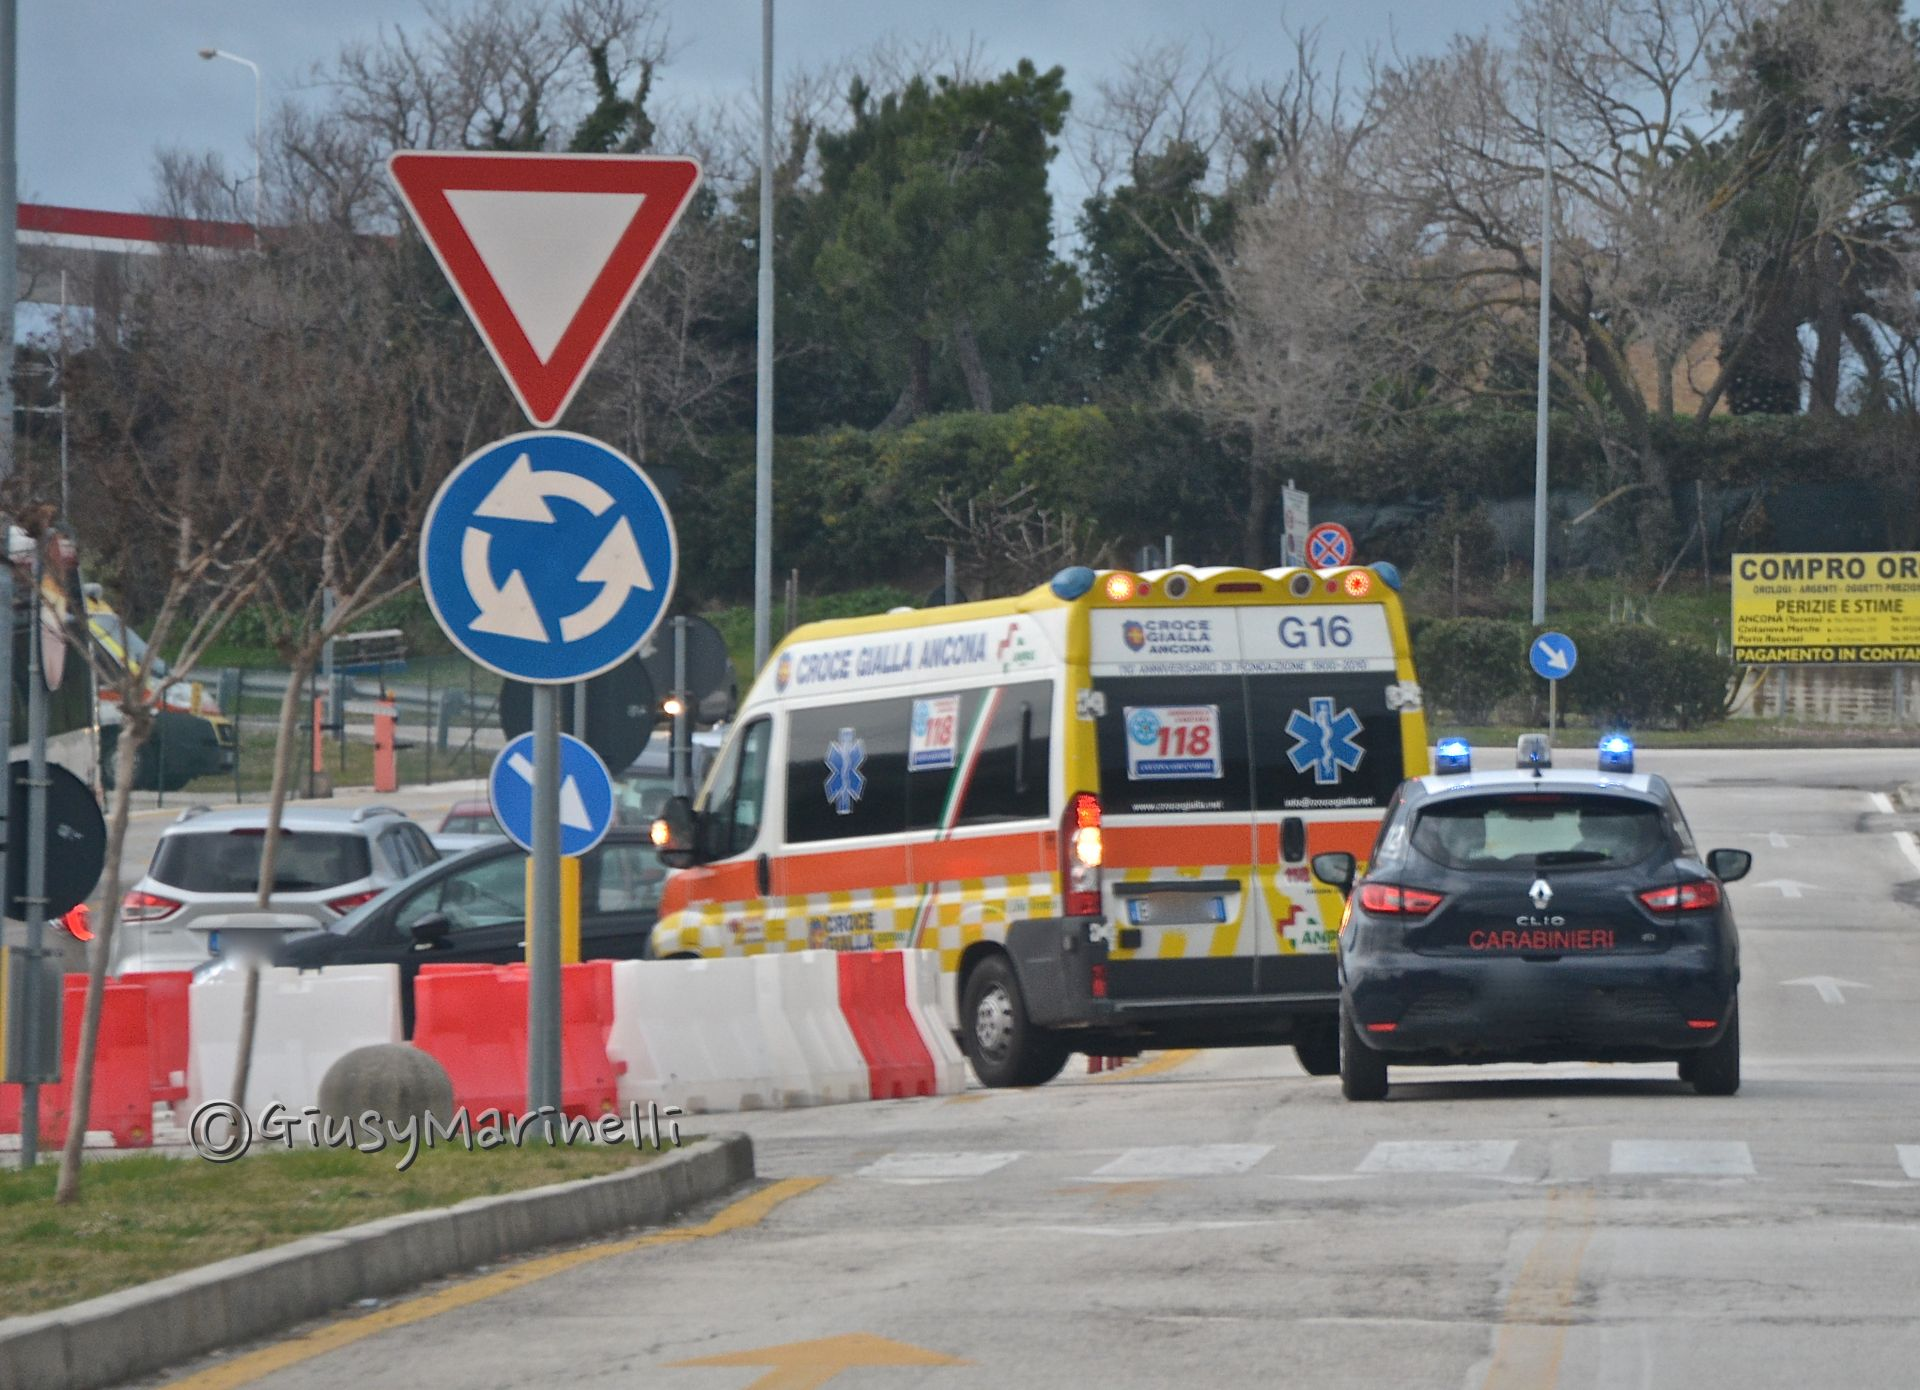 Grave incidente frontale all'alba: grave uomo anziano